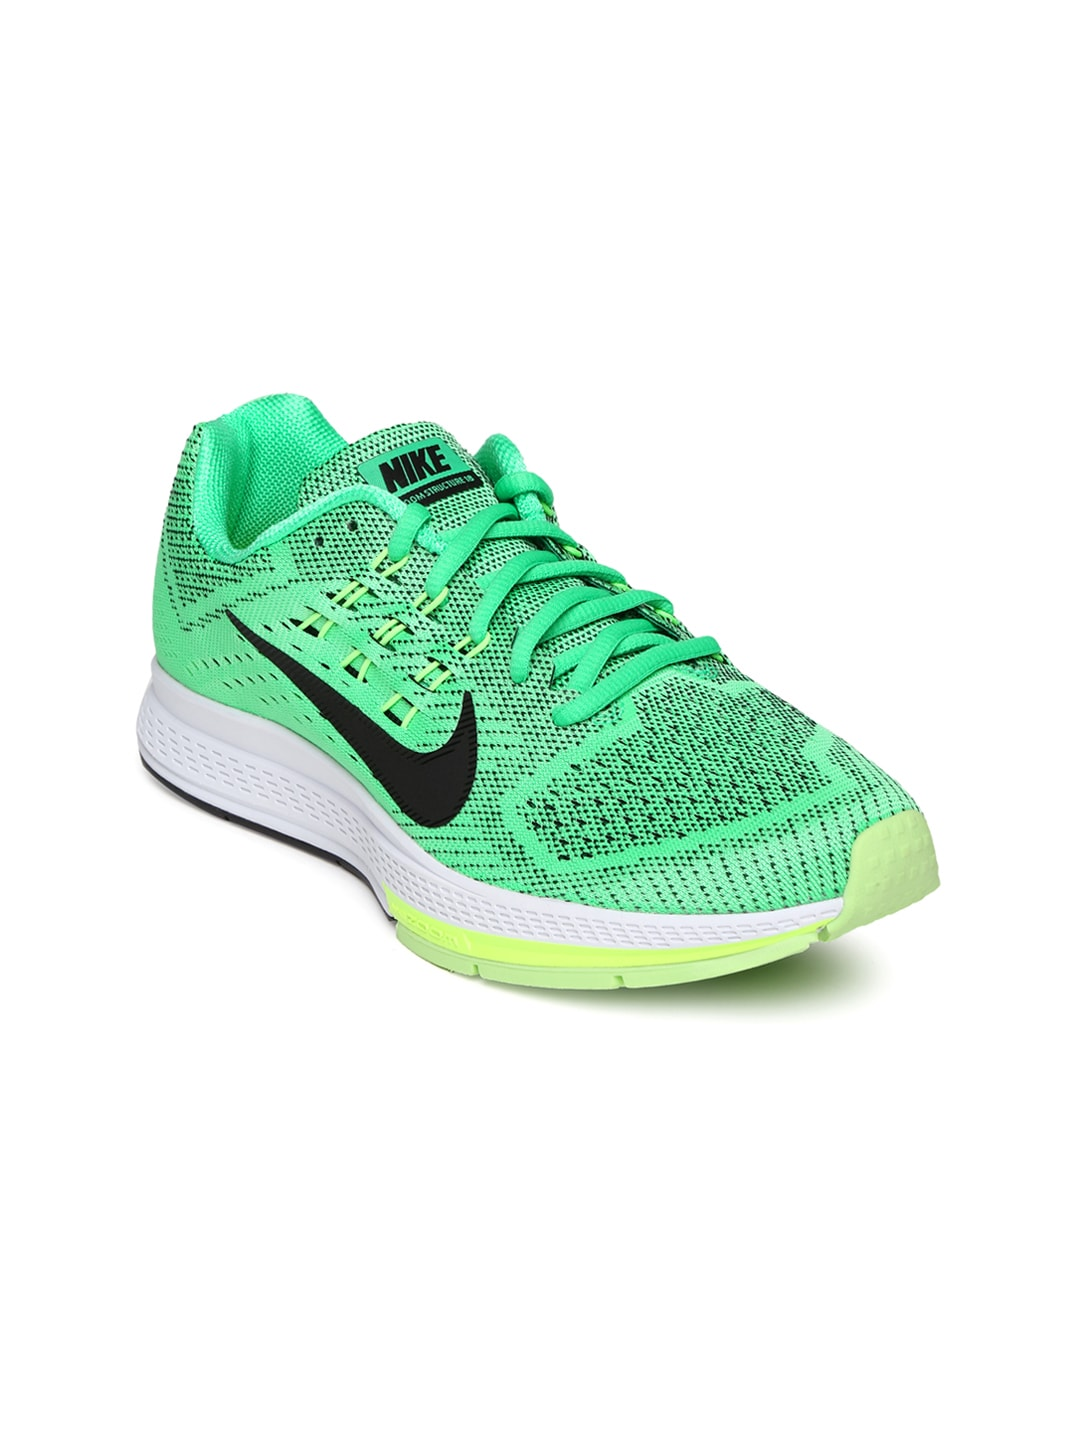 timeless design 8c2d5 3c046 Nike 683737-303 Women Green Air Zoom Structure 18 ...